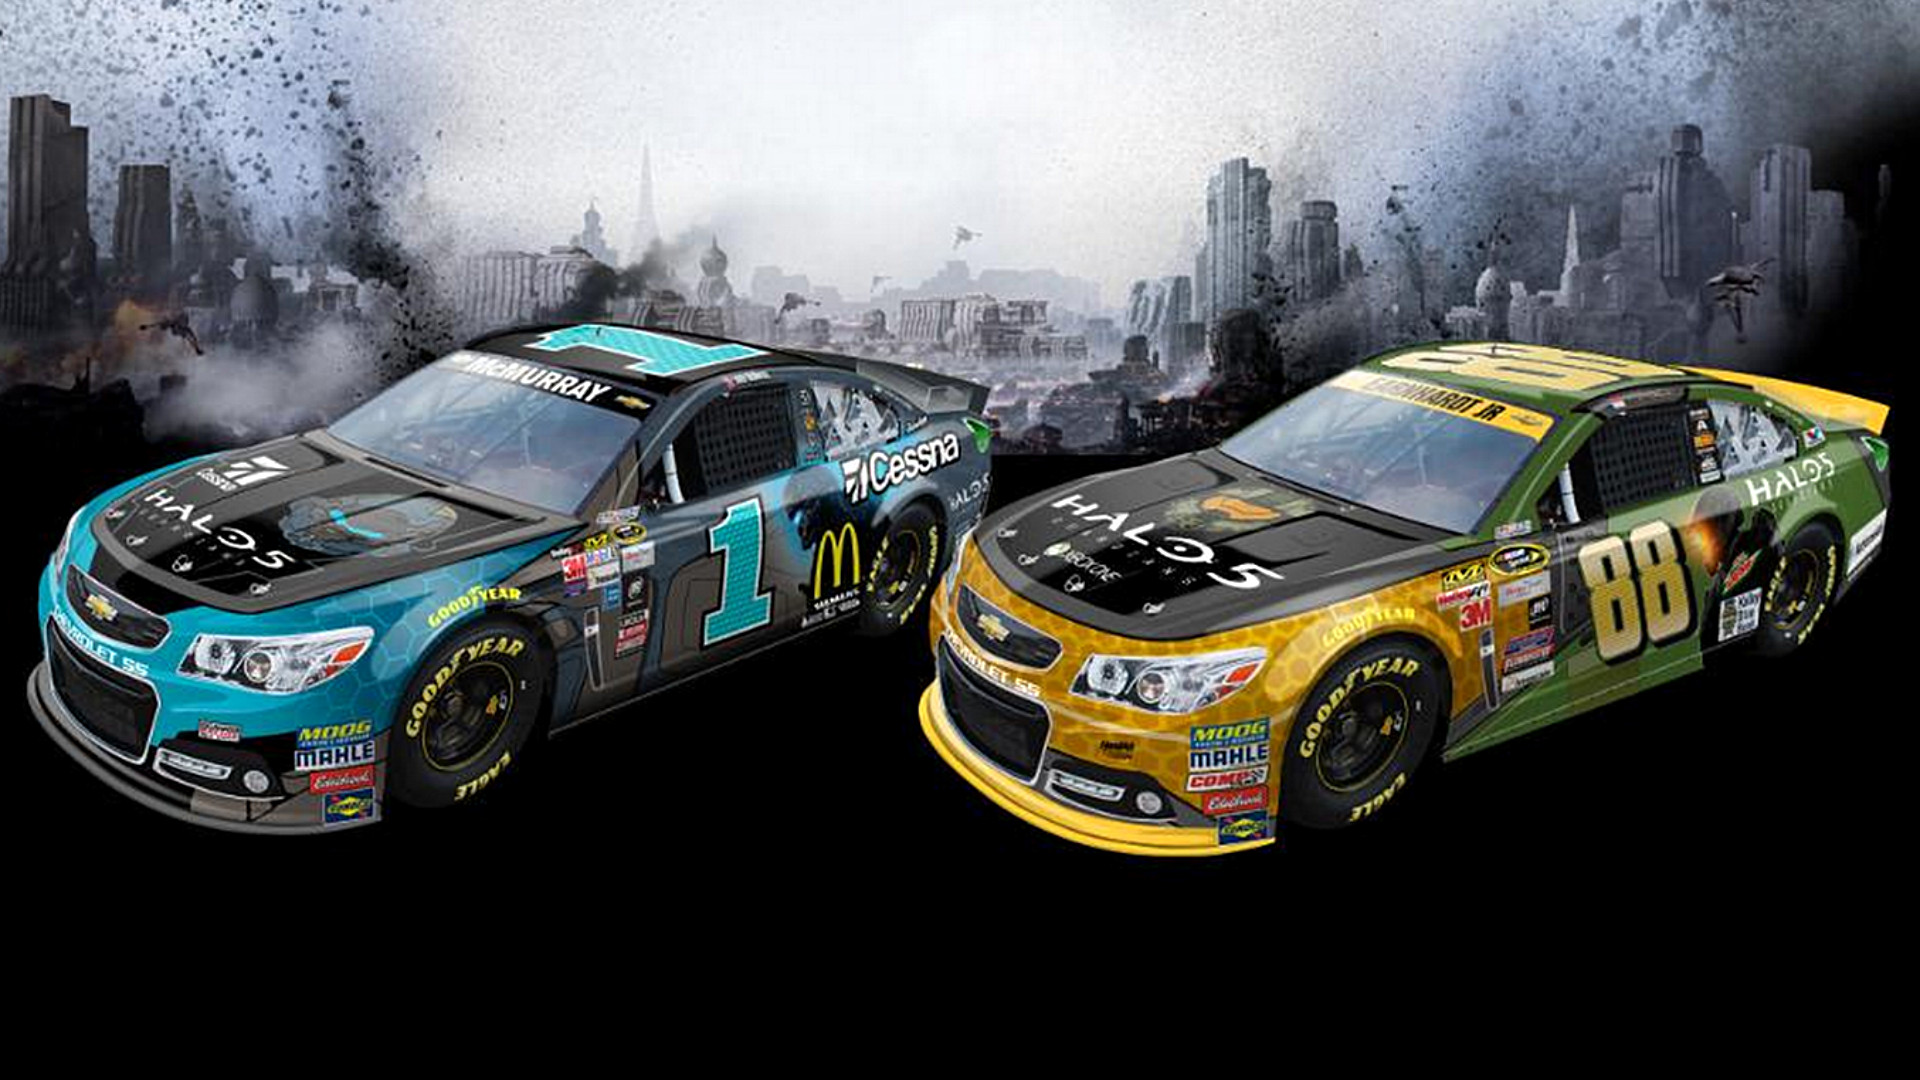 Dale Earnhardt Jr., Jamie McMurray cars to have 'Halo' schemes | NASCAR |  Sporting News